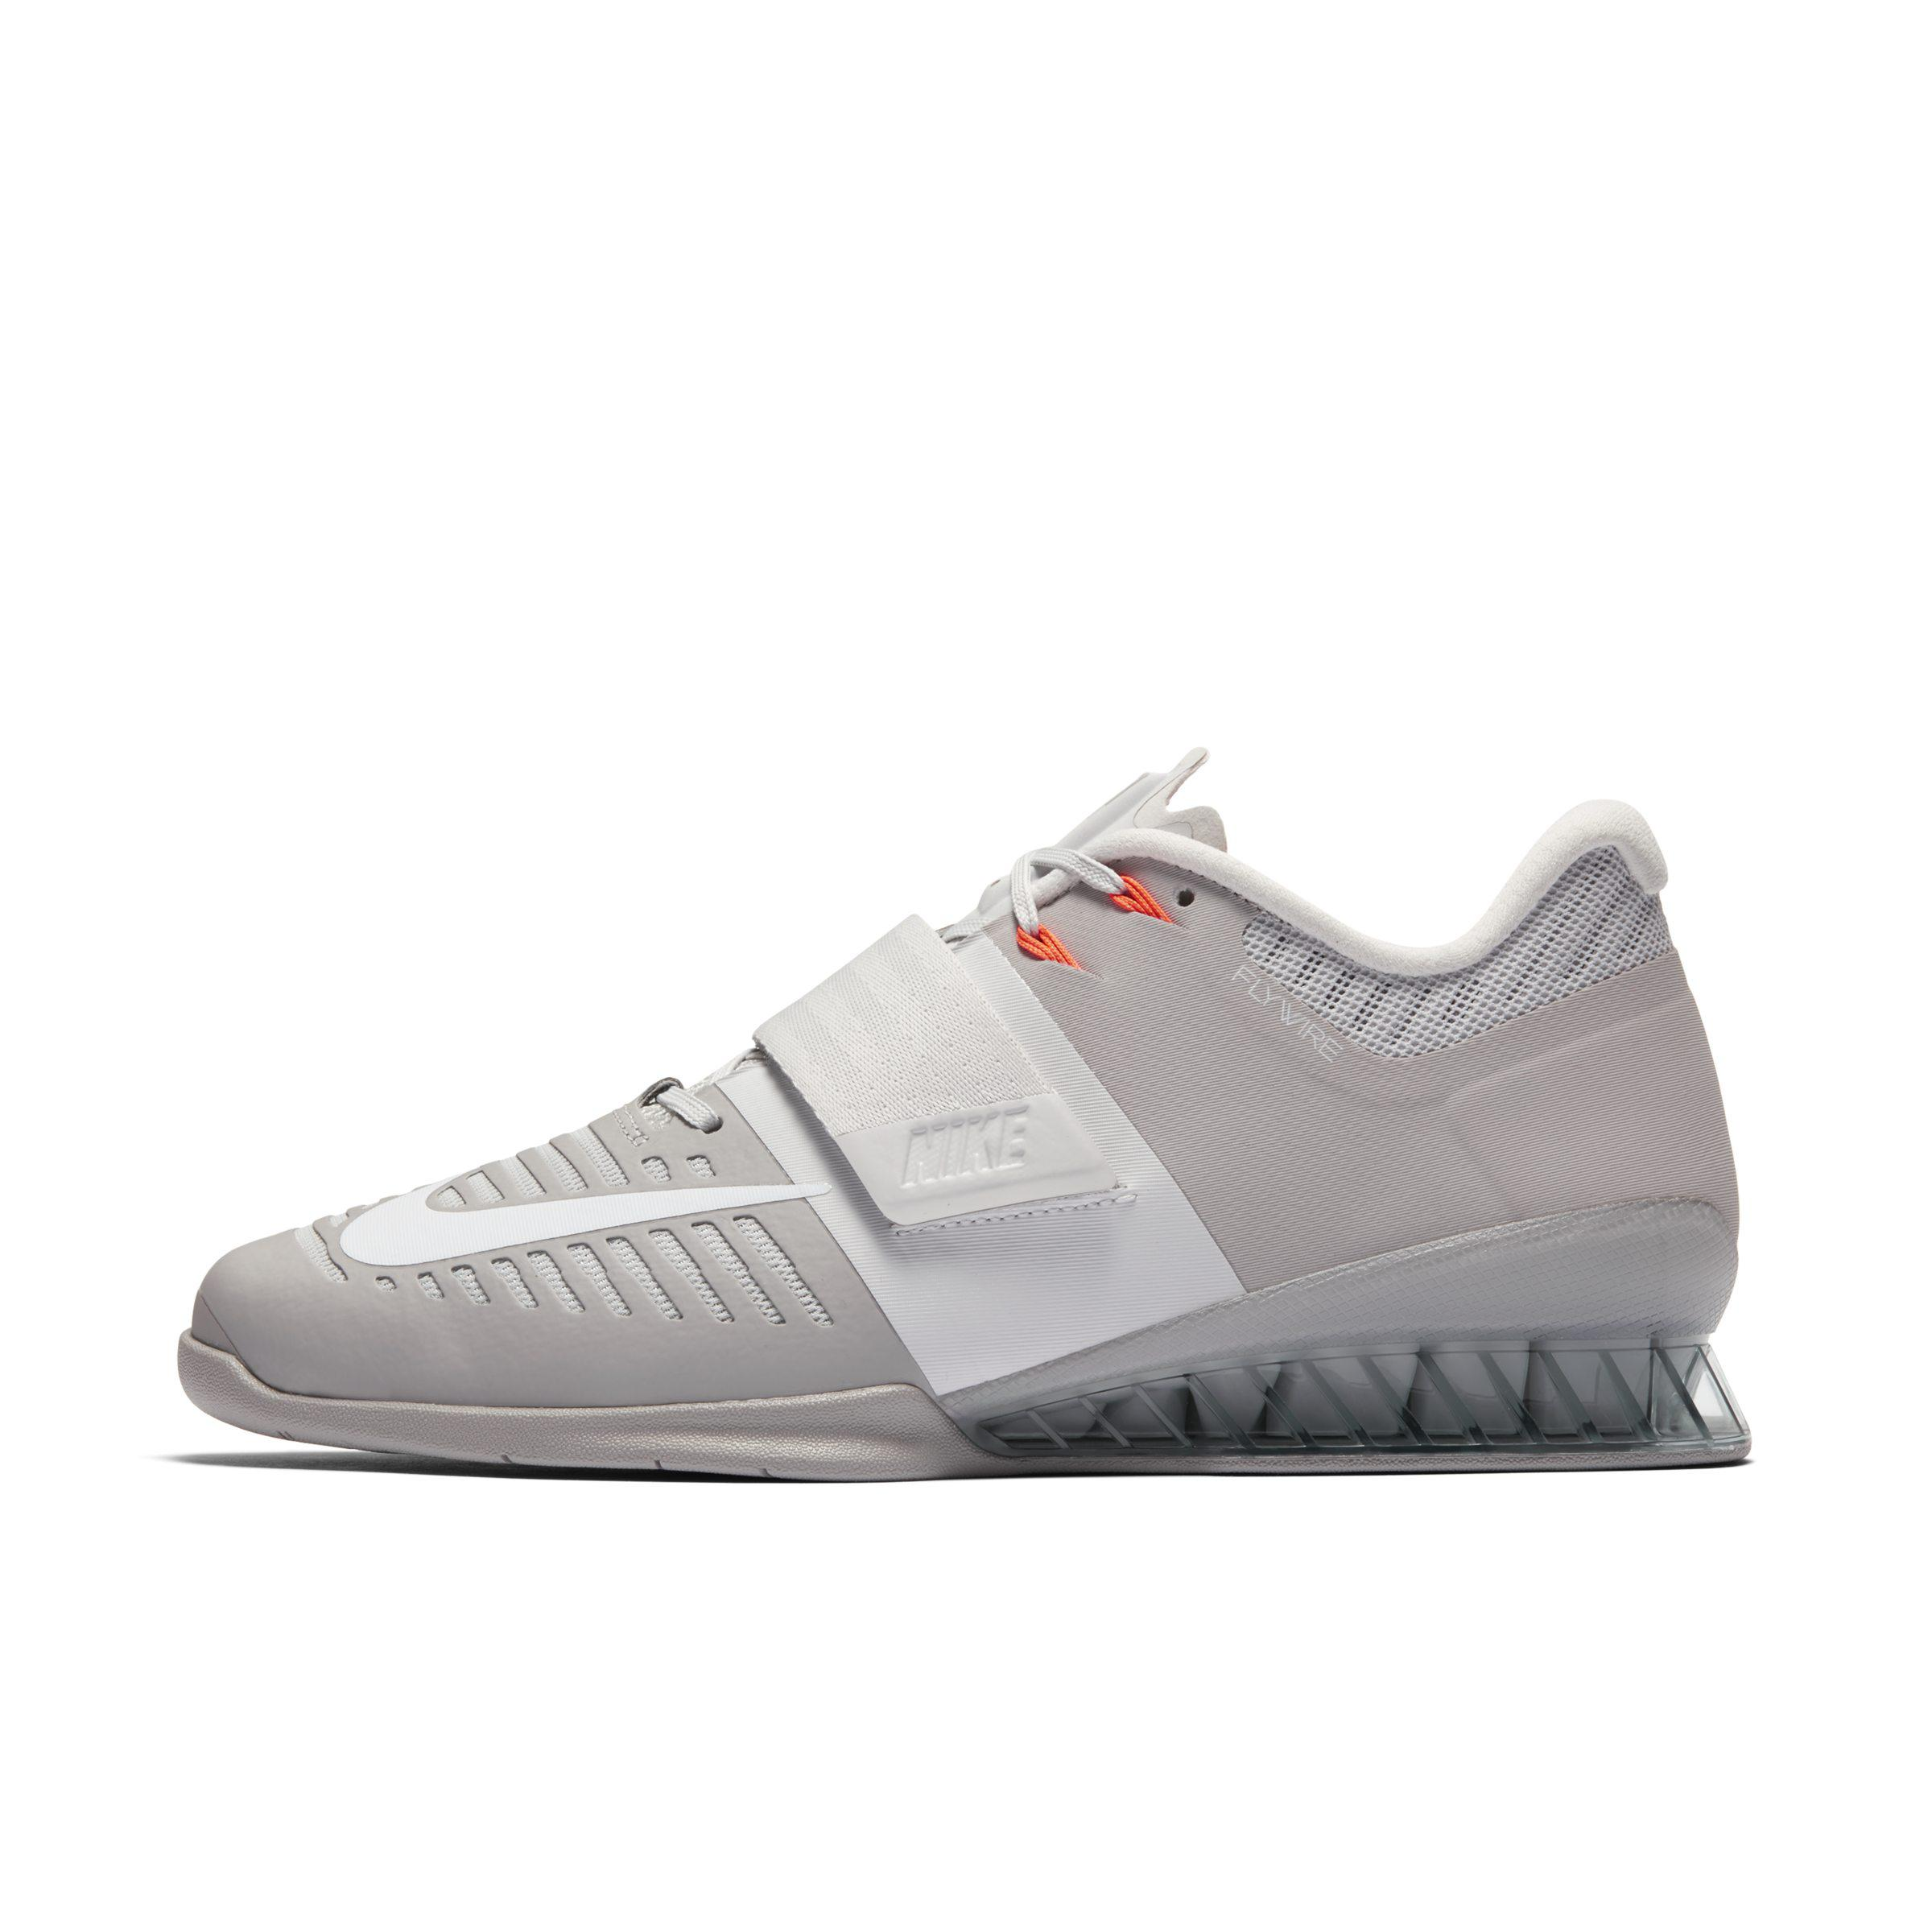 promo code 93c54 1c918 Nike Romaleos 3 Weightlifting powerlifting Shoe in Gray - Lyst